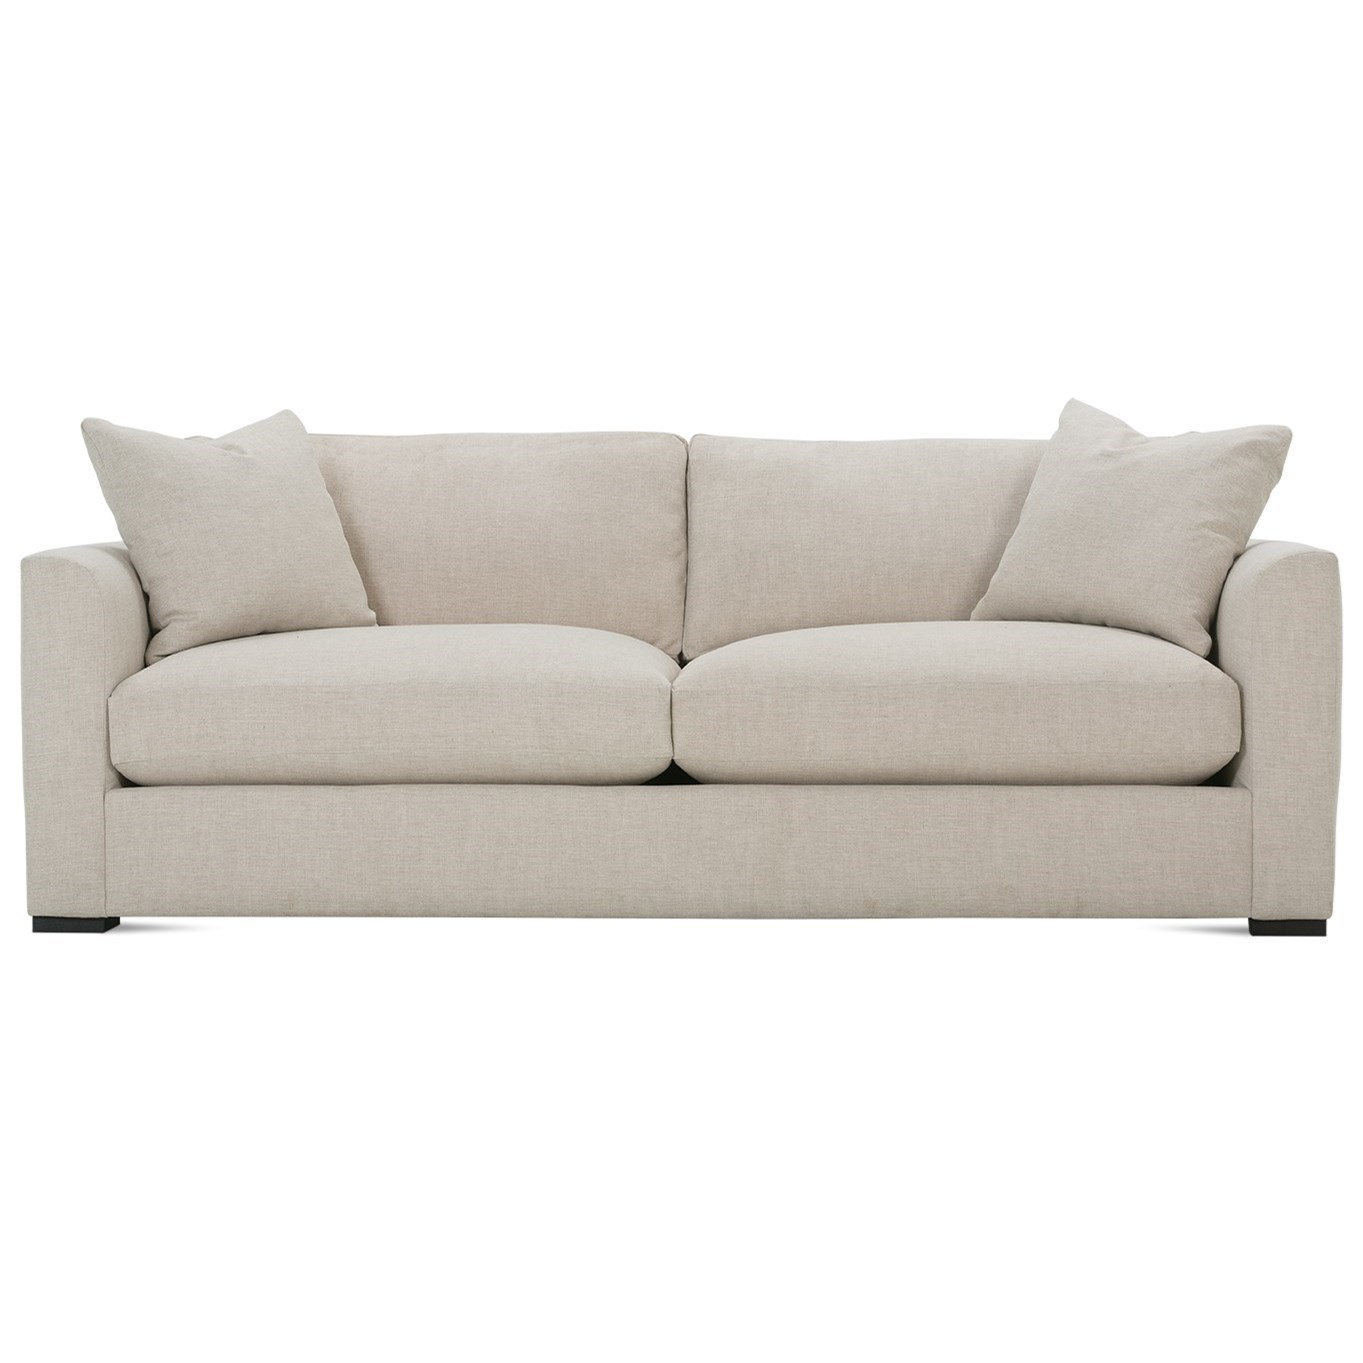 Rowe Derby Transitional Sofa With Tapered Arms Reeds